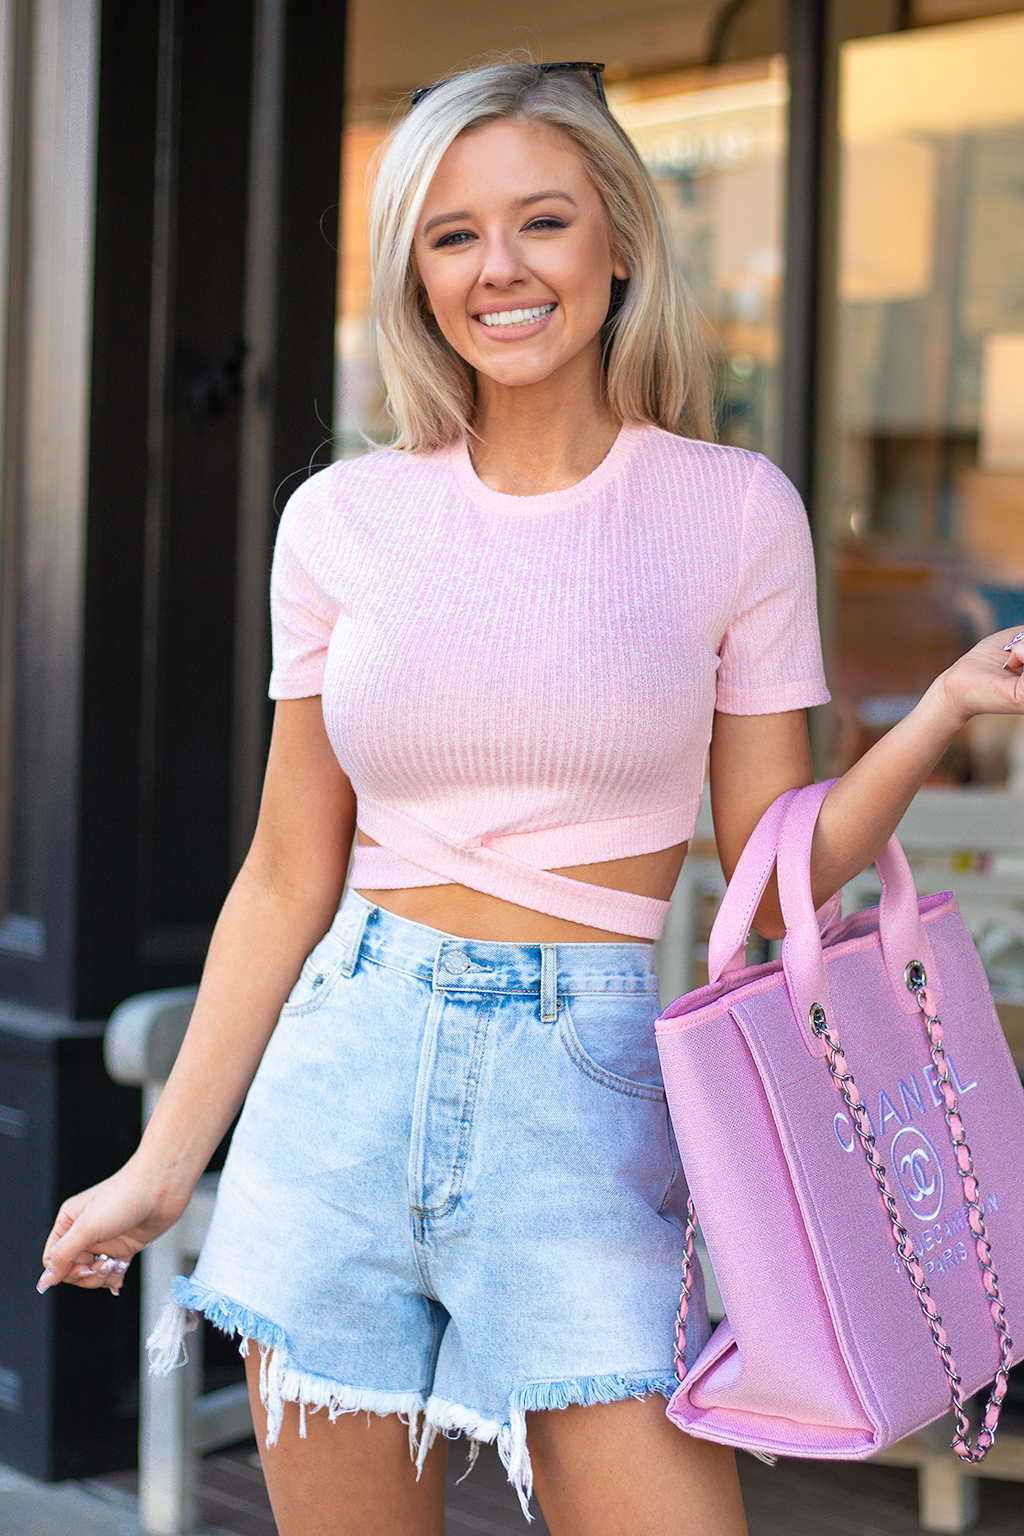 CUTOUTS ARE SO BACK. WE ARE SEEING DRESSES, TOPS, AND EVEN SKIRTS WITH FUN LITTLE CUTOUTS LIKE THIS. WE ARE SO EXCITED TO BRING THEM TO YOU. -Taylor is wearing a size small -color: pink -cropped  -stretchy material  -ribbed material